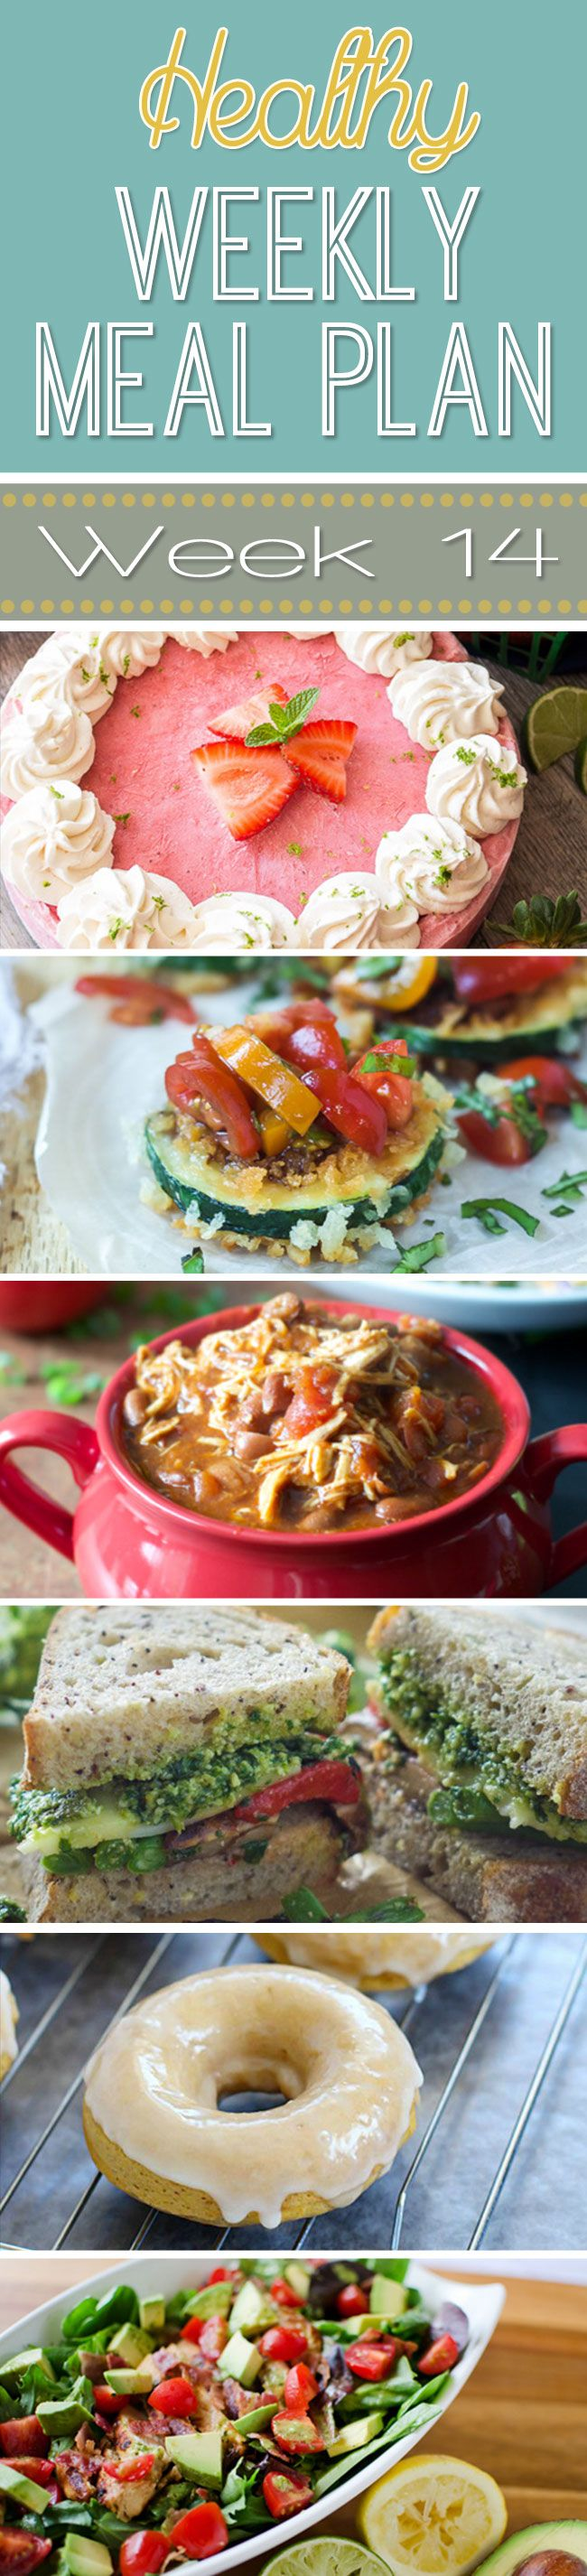 Healthy Meal Plan Week #14 - yummy breakfast, lunch, dinner, snack and dessert recipes for you to make this week!